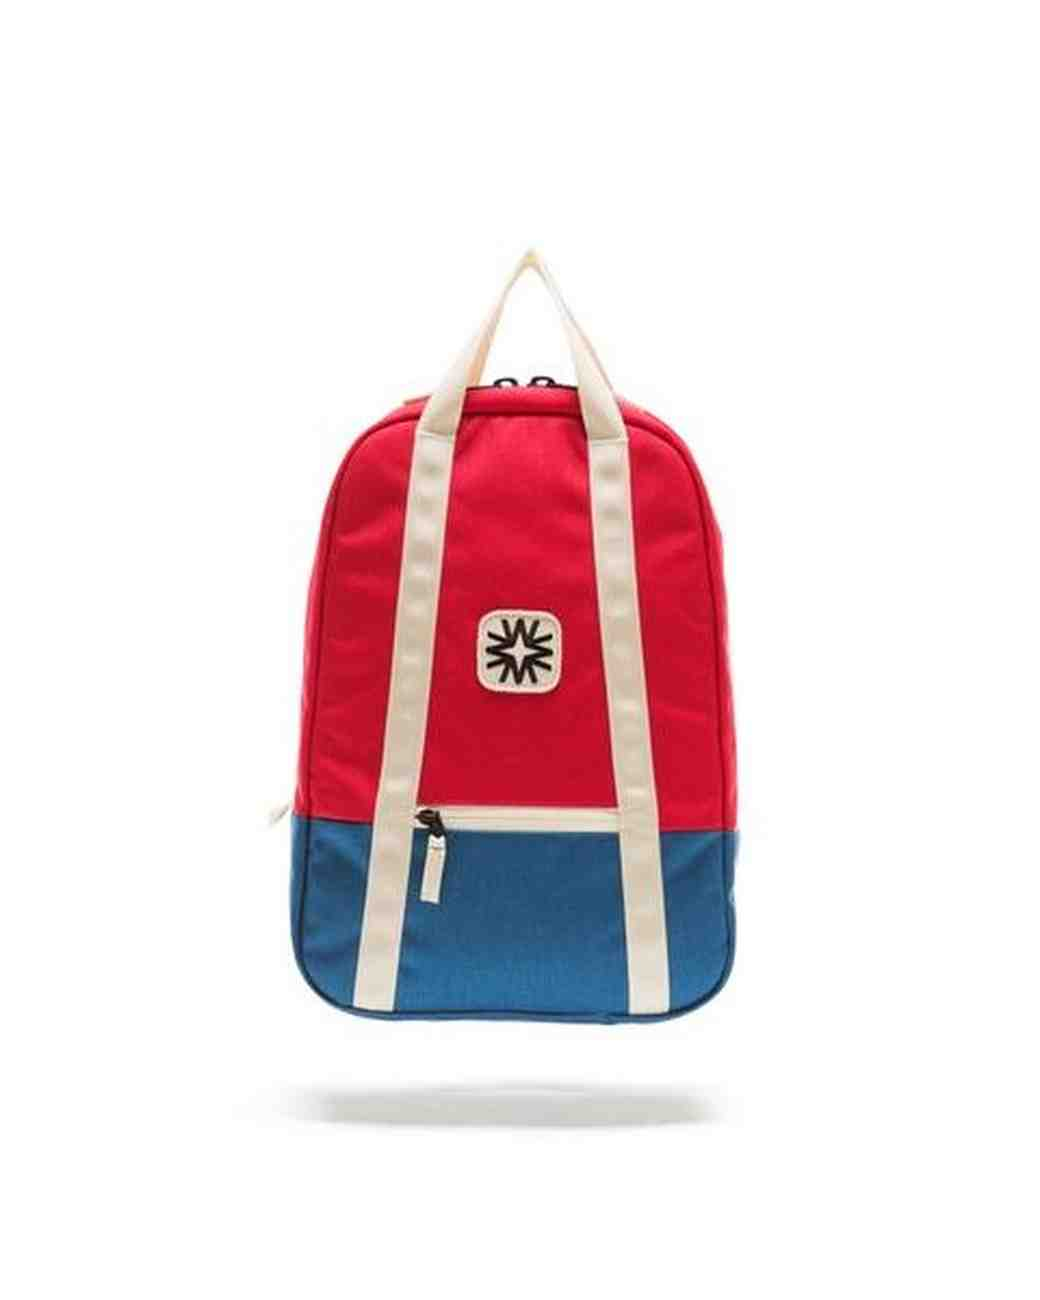 ring bearer gift guide walker goods arrow backpack red and blue